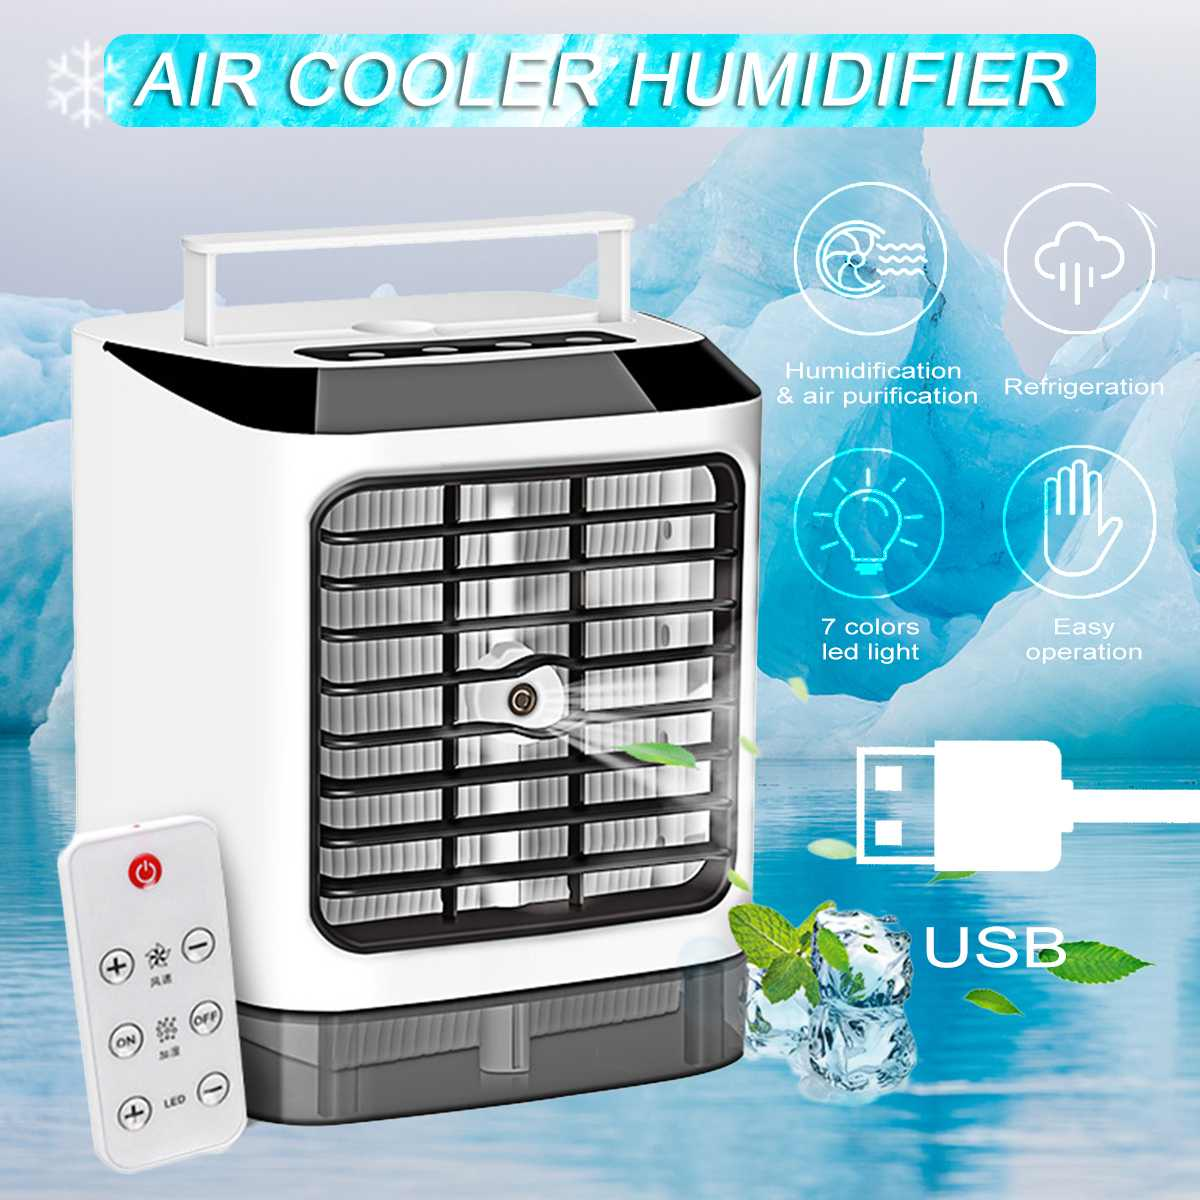 Mini Portable Air Conditioner 7 Colors LED Conditioning Humidifier Purifier USB Desktop Air Cooler Fan Remote Controller